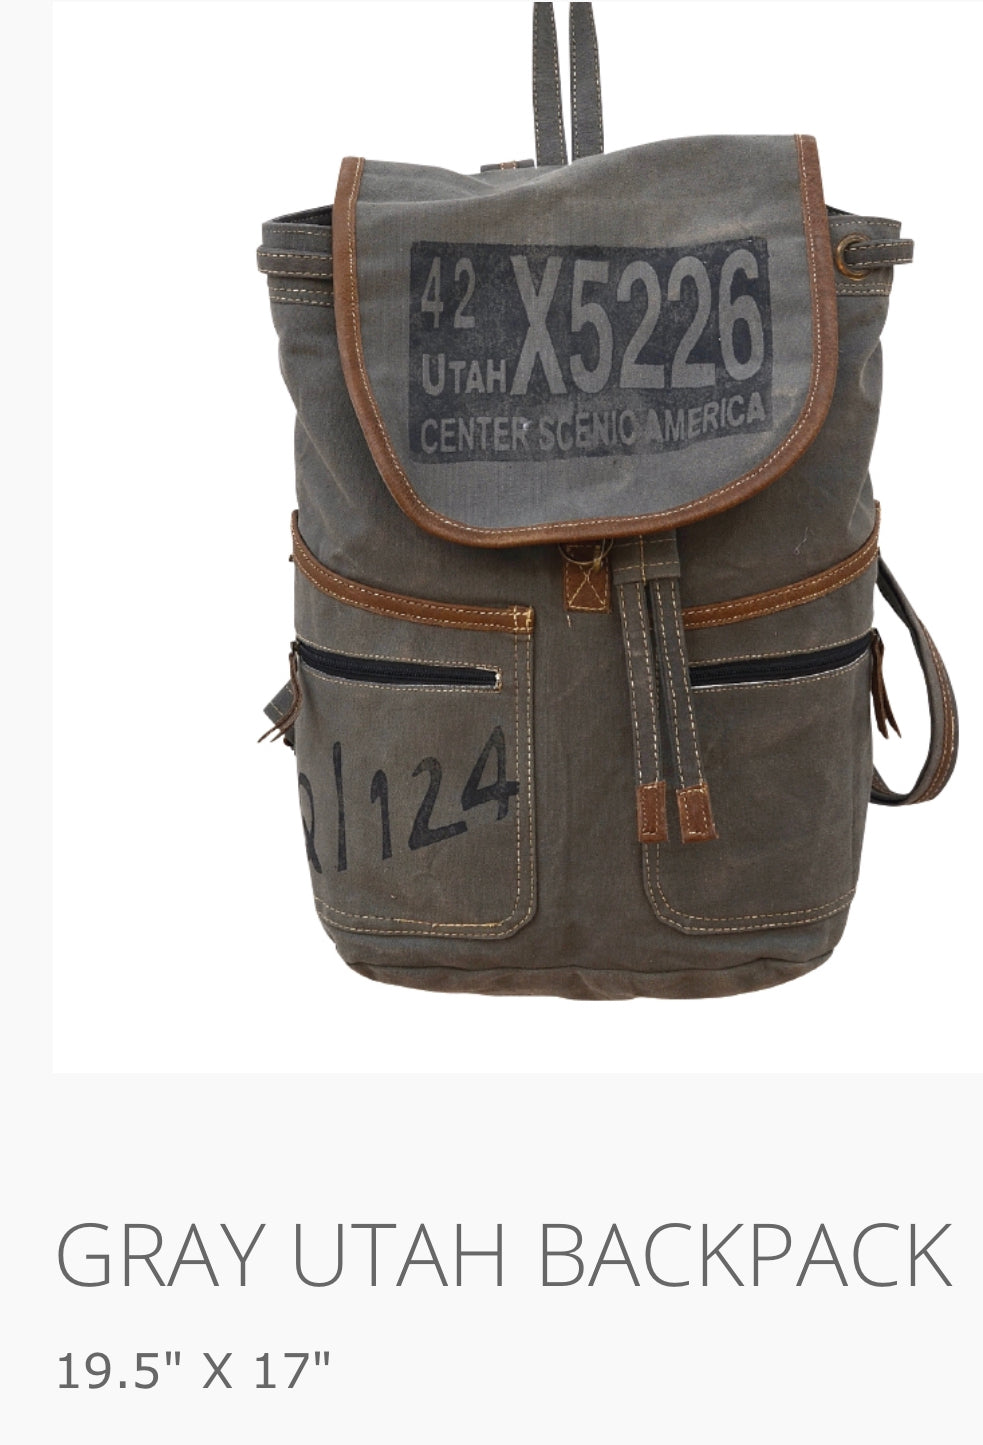 Gray Utah Backpack X5226 Made from Military Truck and Tent Canvas - The Wall Kids, Inc.